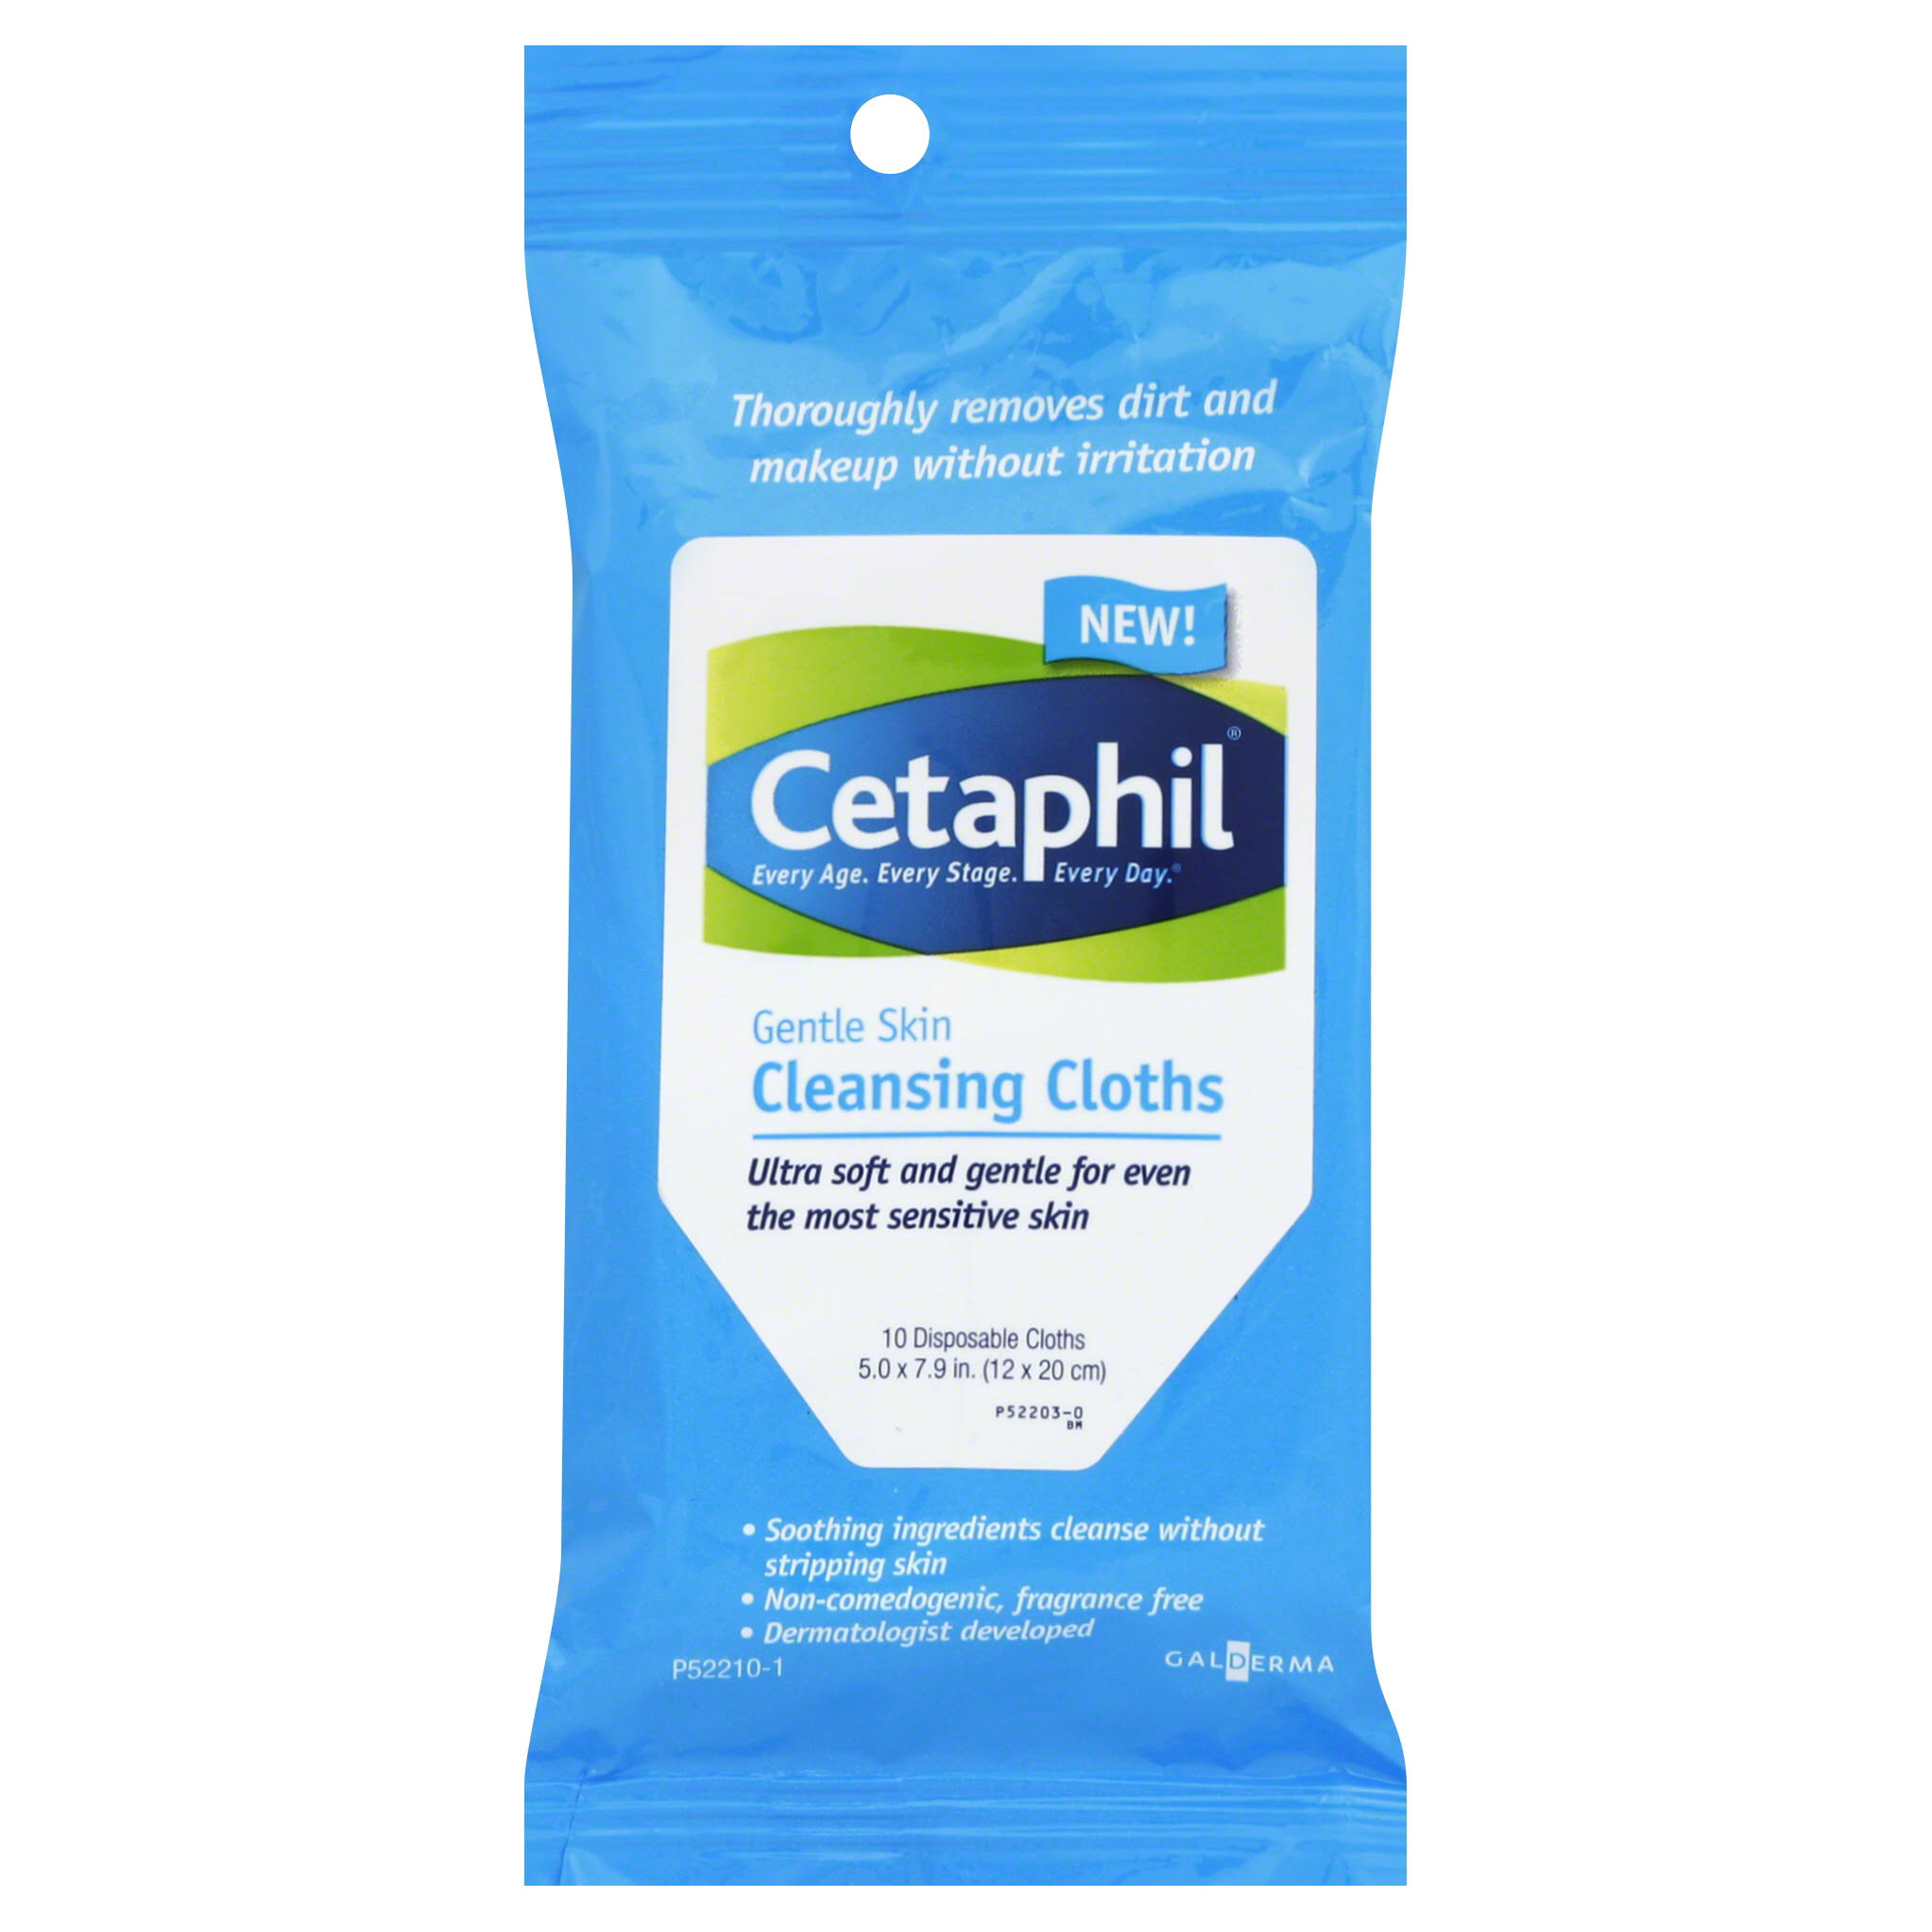 Cetaphil Gentle Skin Cleansing Cloths - 10 Disposable Cloths